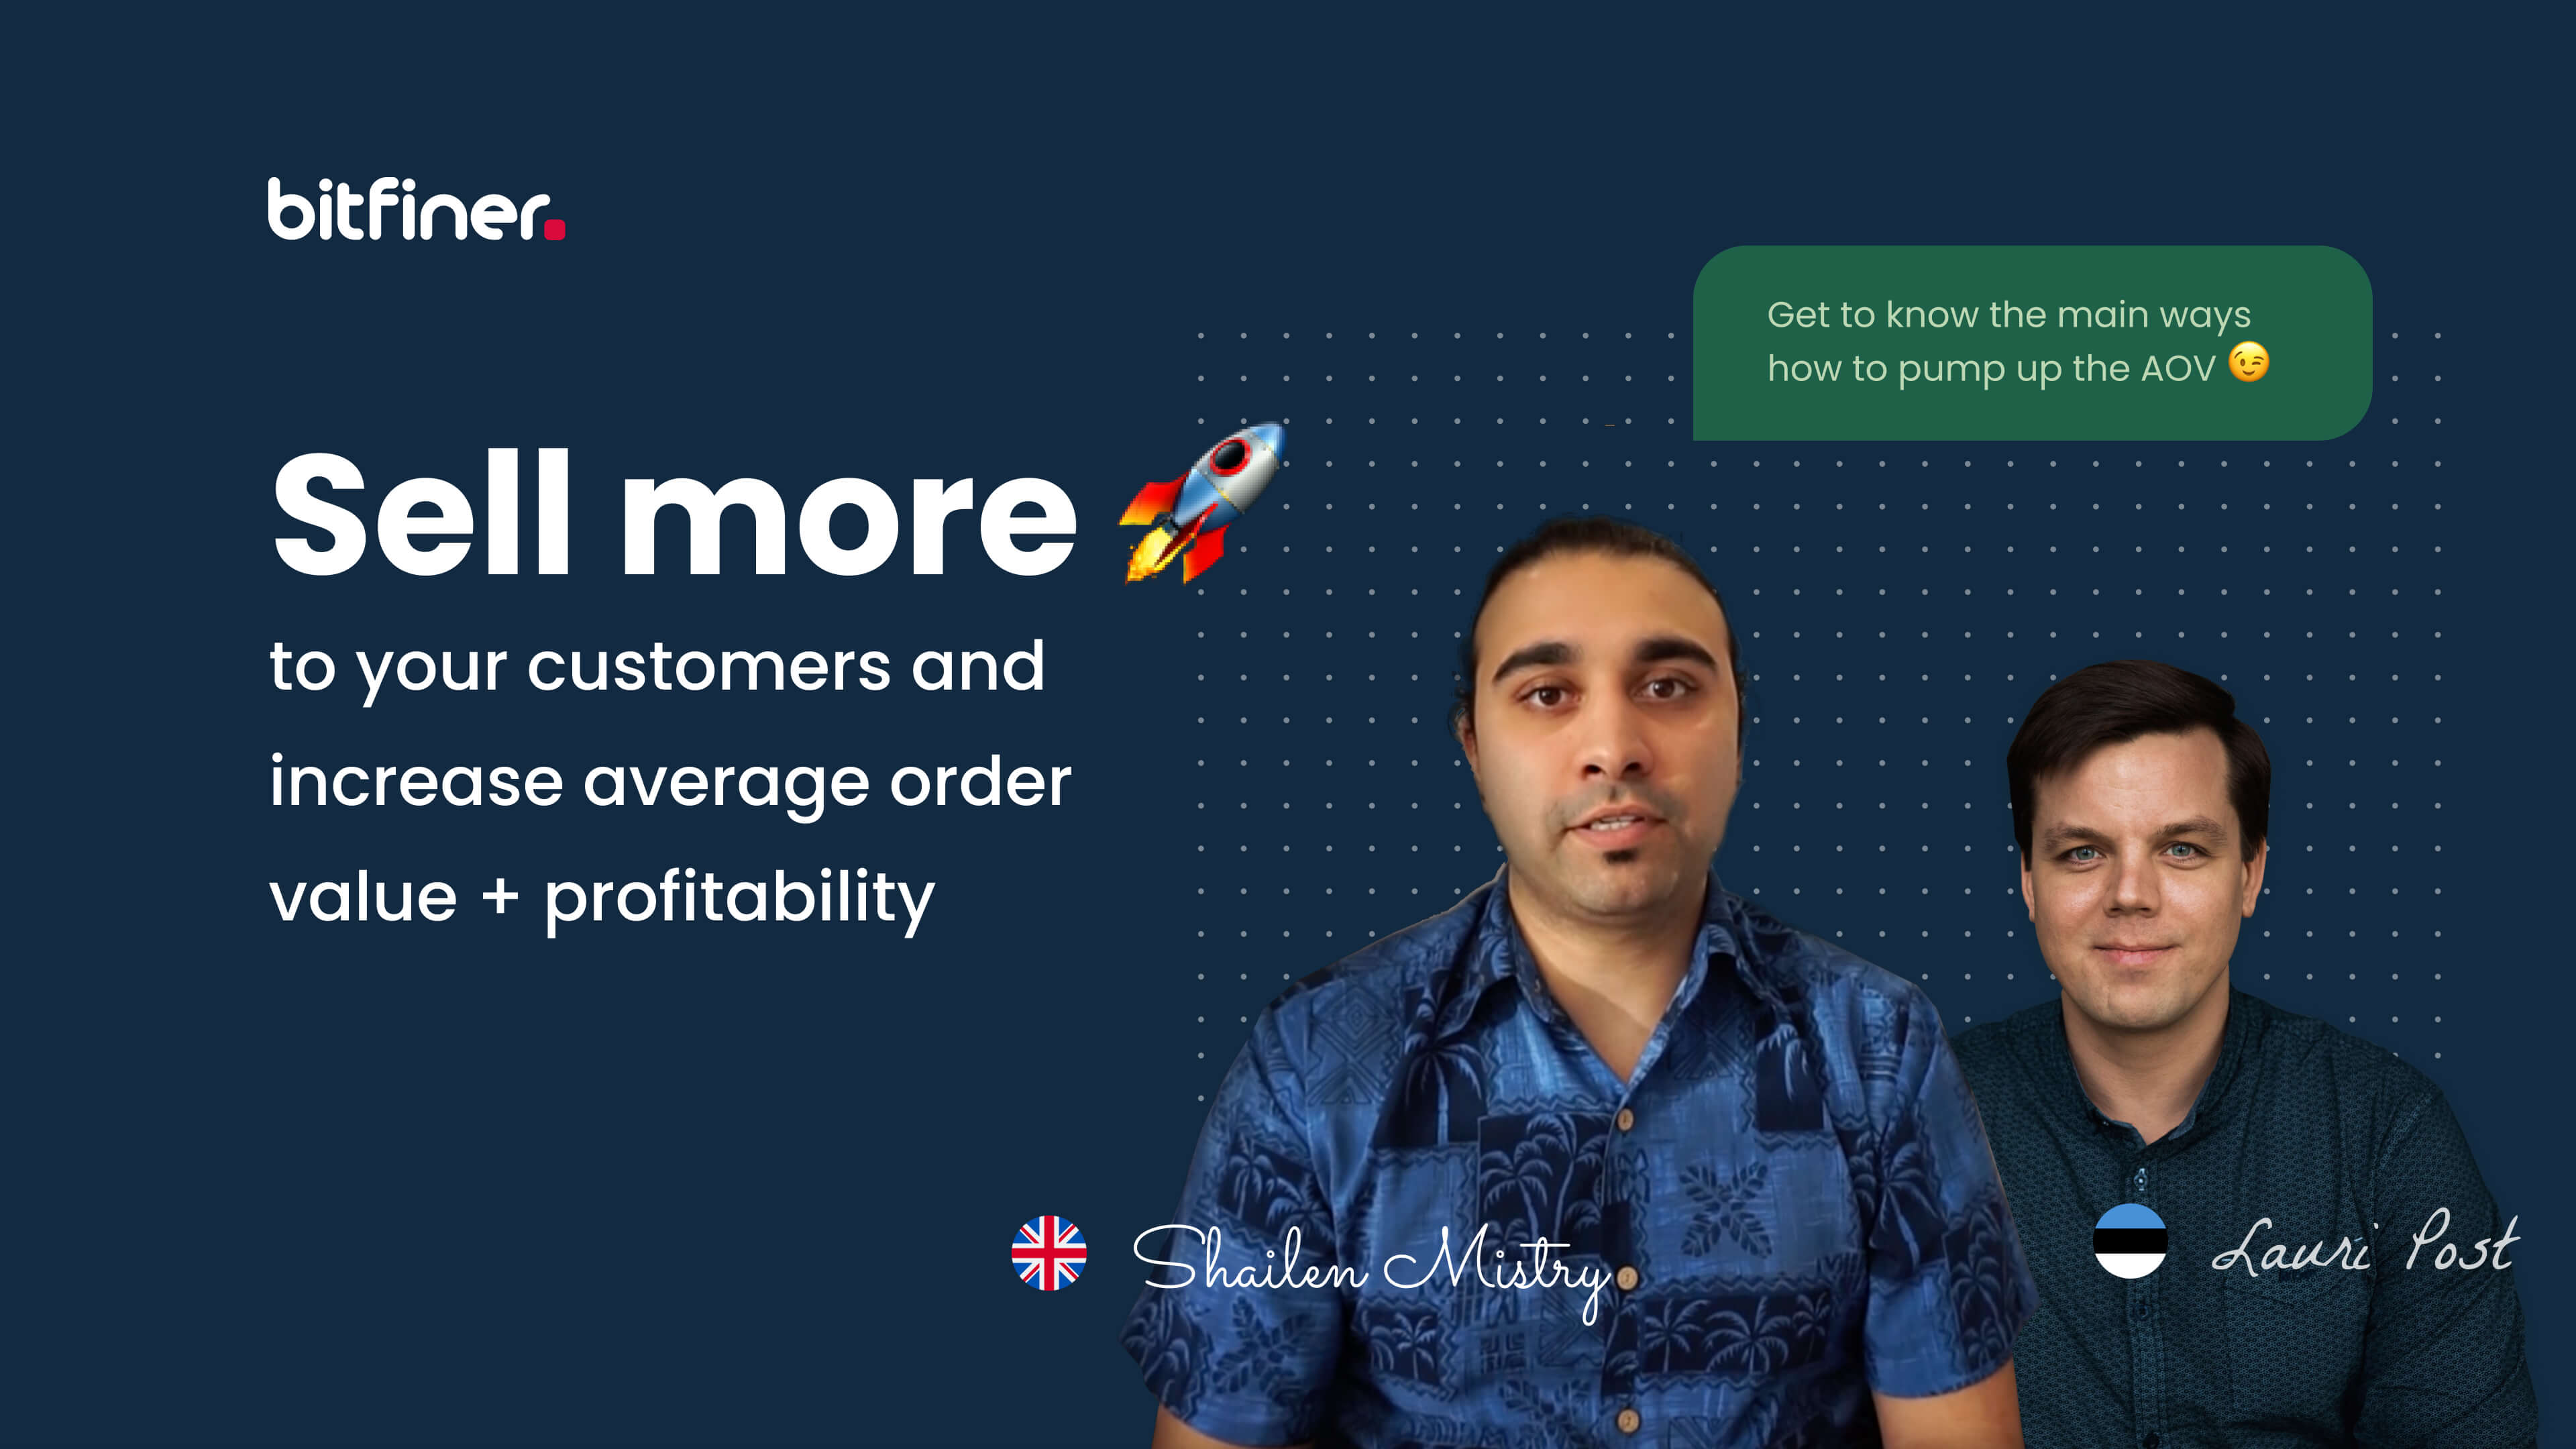 Bitfiner has released a free mini-workshop for eCommerce businesses to help increase their AOV and bottom-line